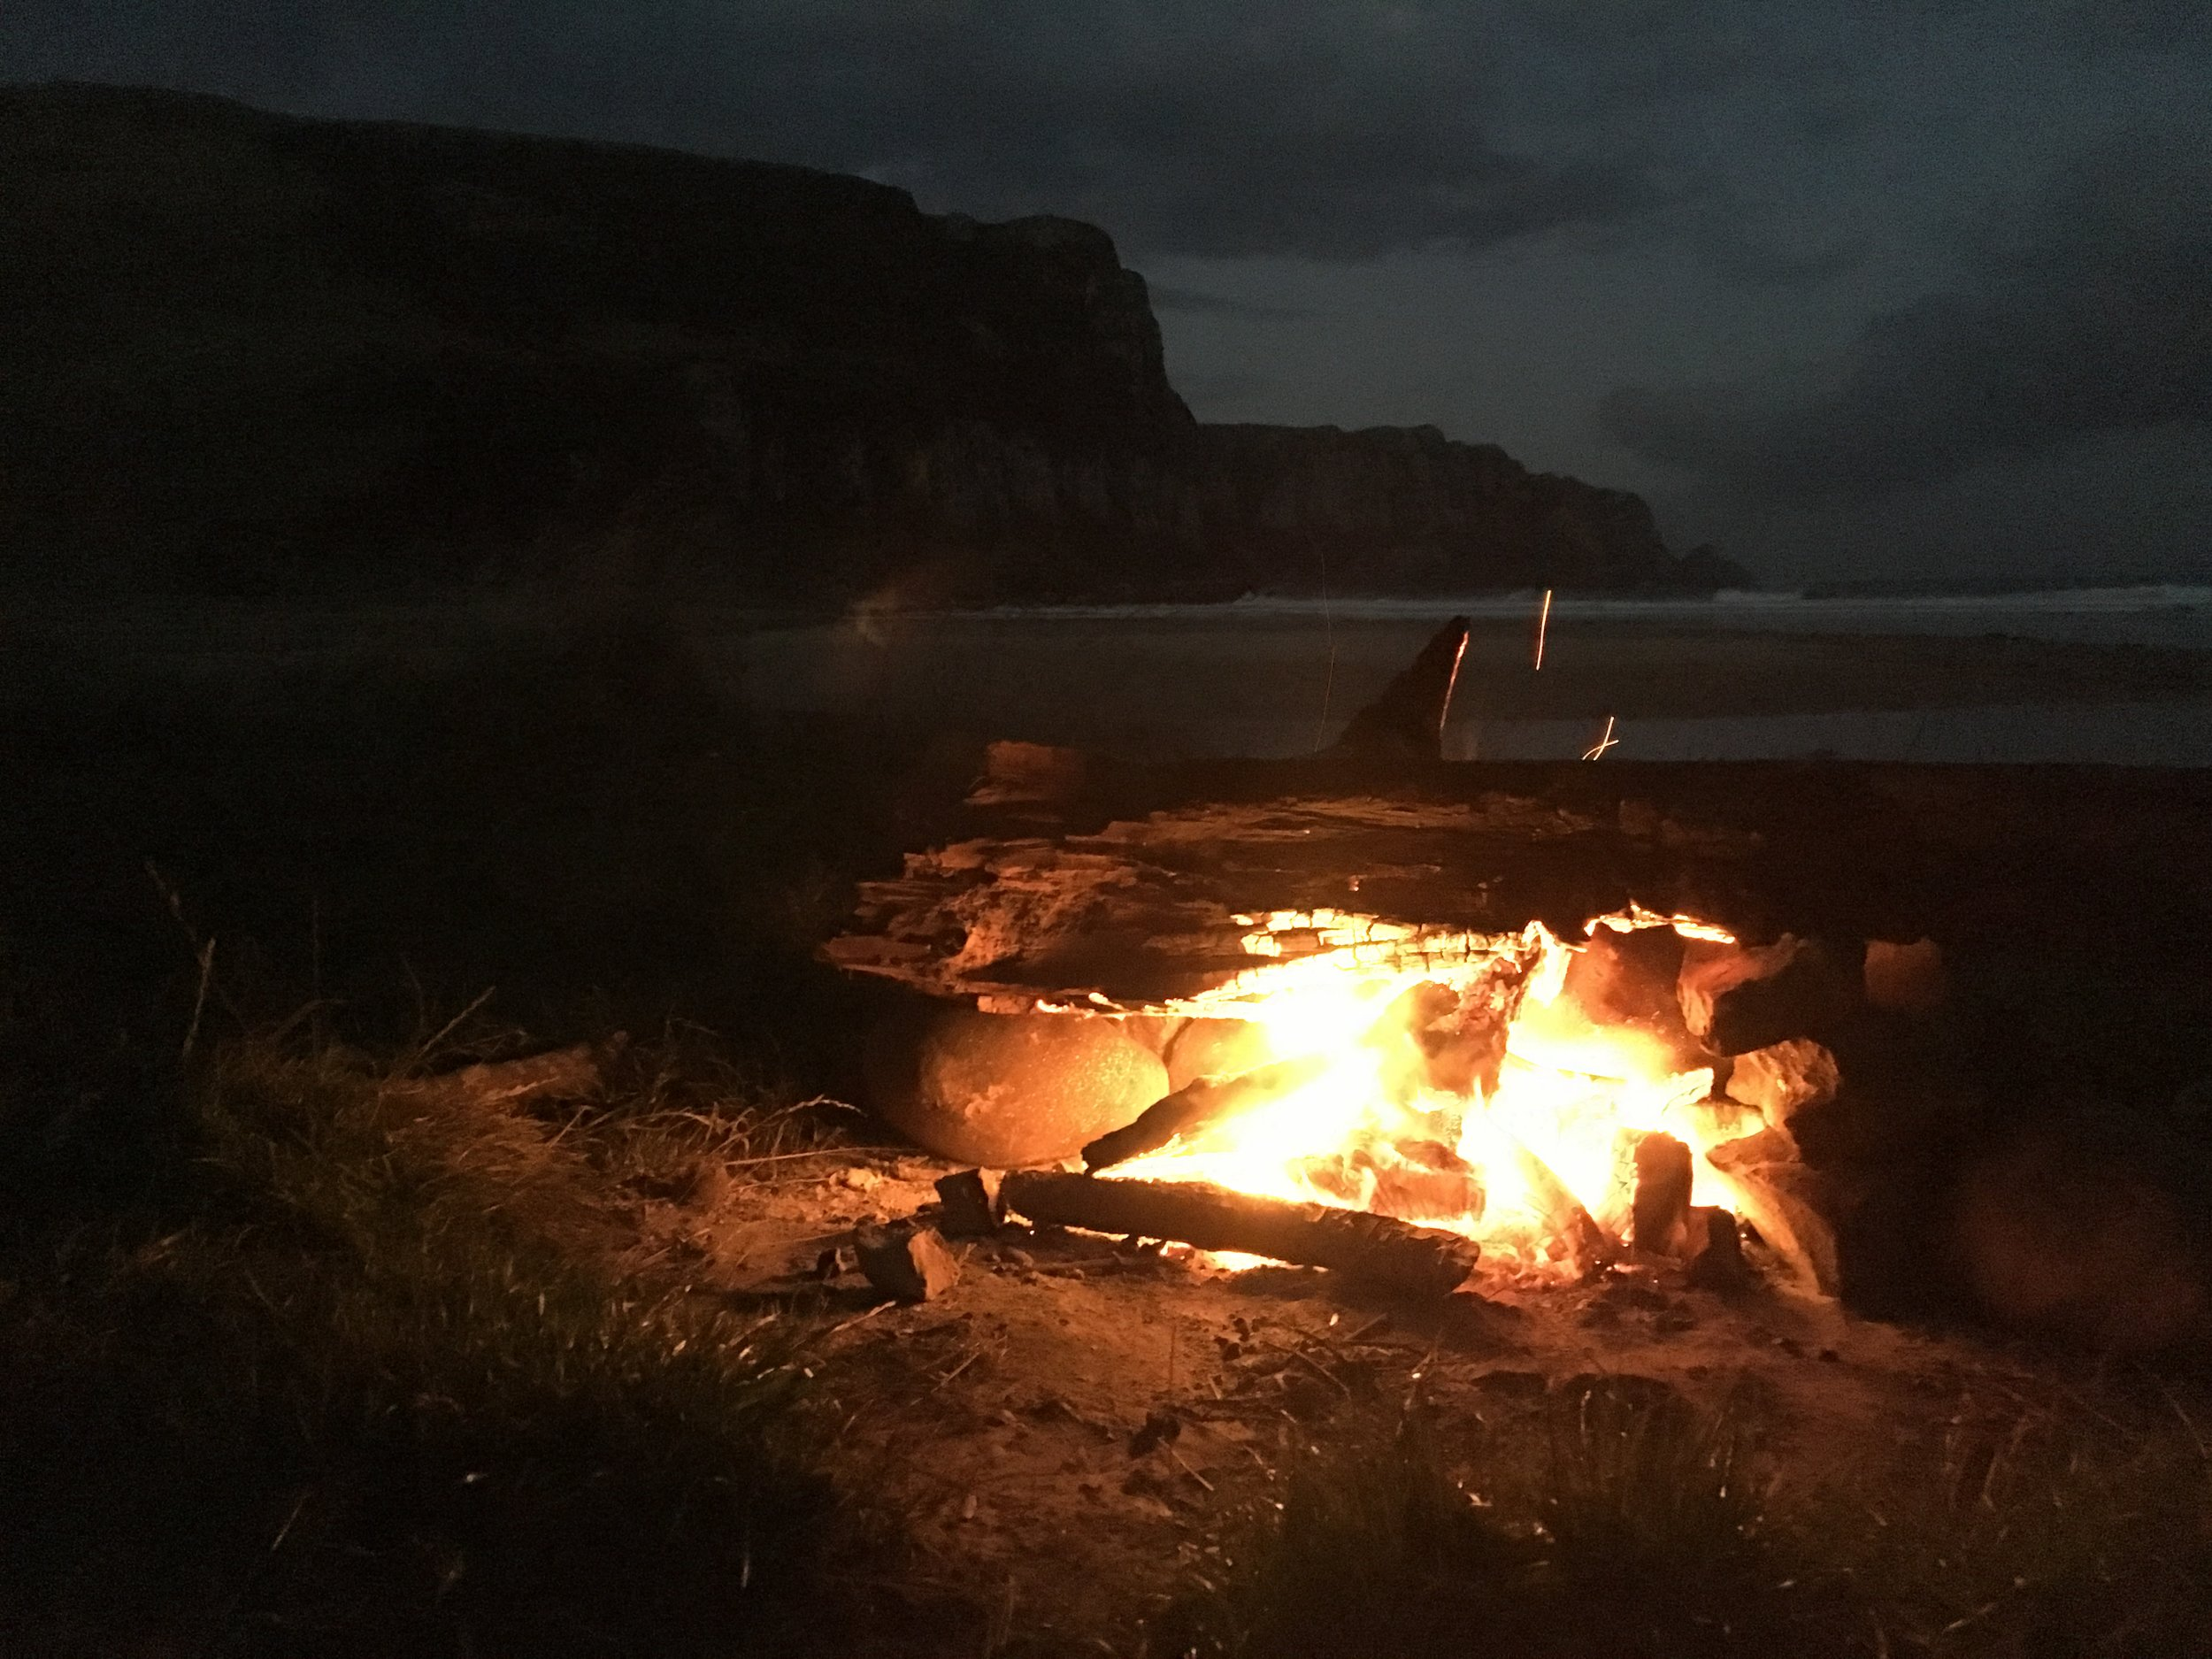 Bonfire and drinks with other campers at Purakaunui Bay